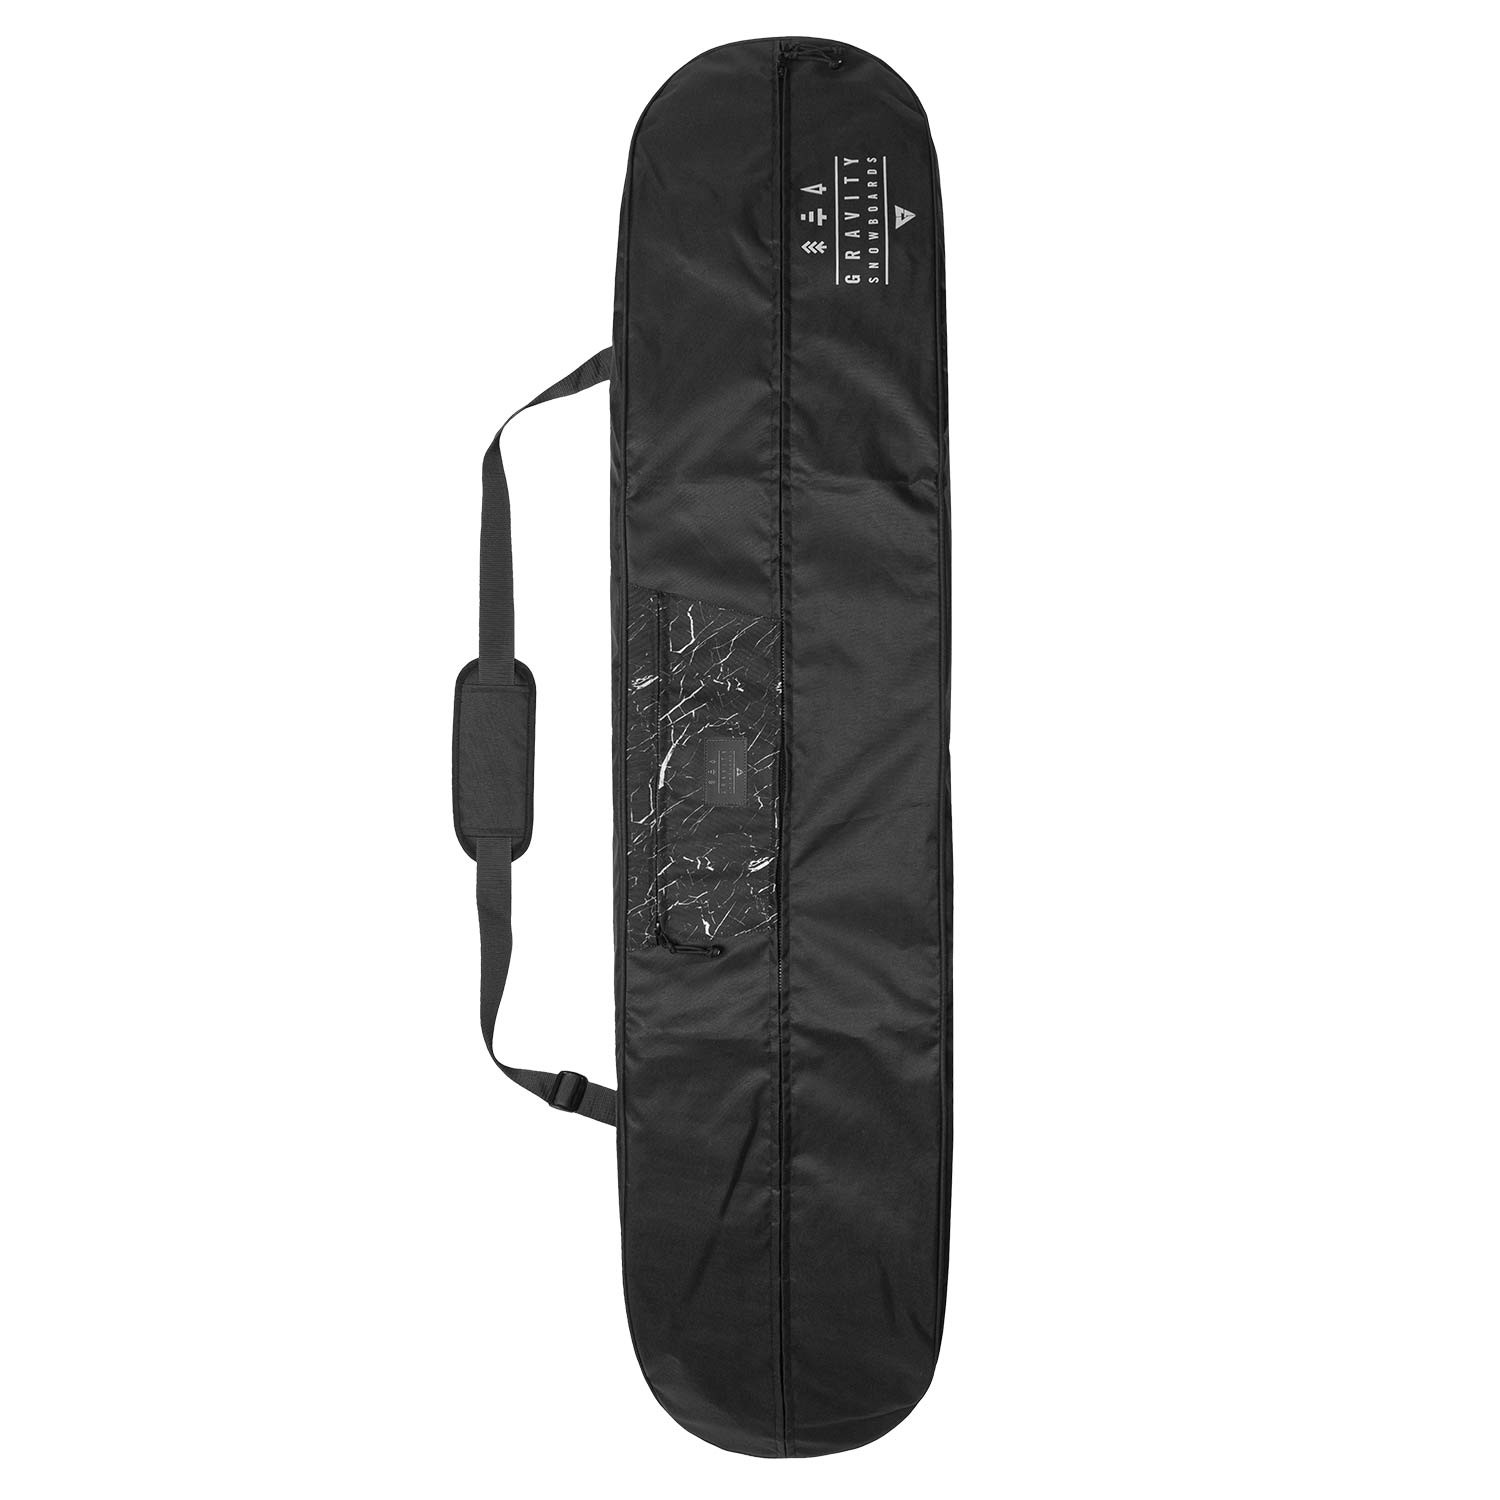 Obal na snowboard Gravity Scout 17/18